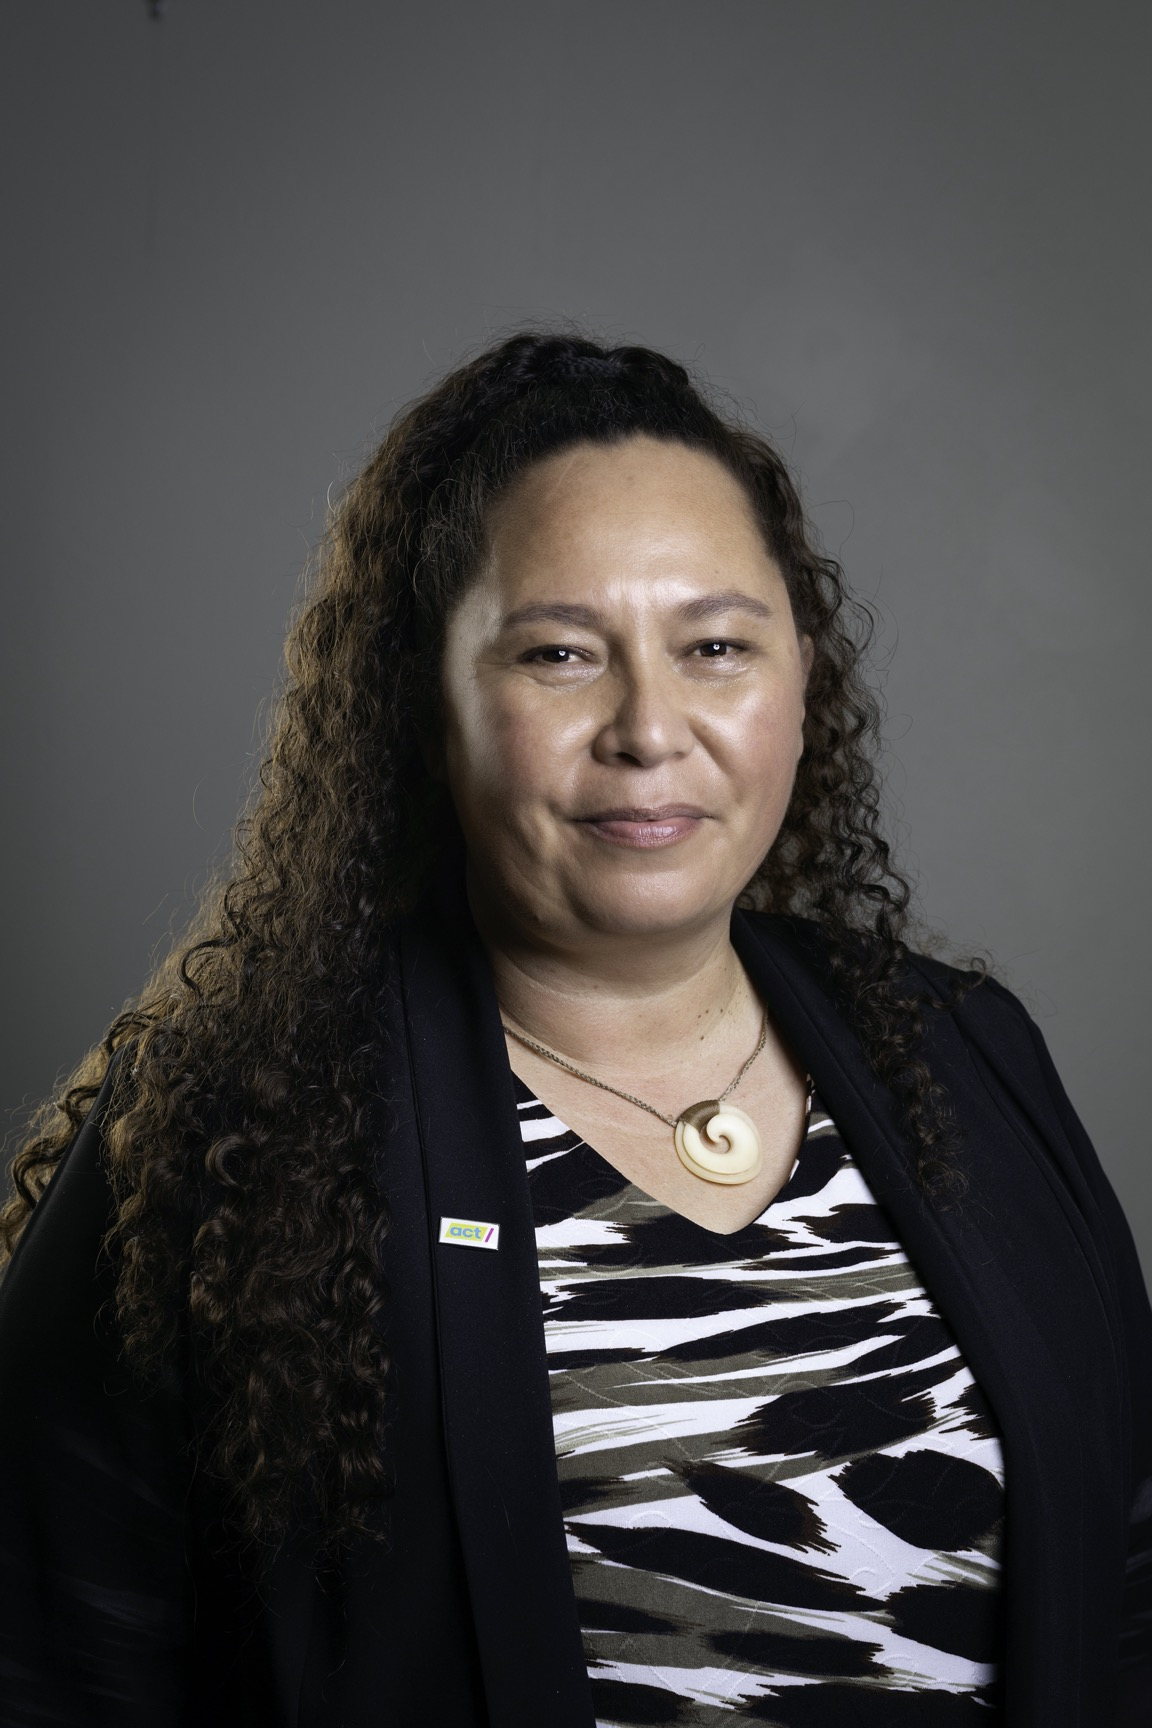 Nicole McKee | ACT Candidate for Rongotai